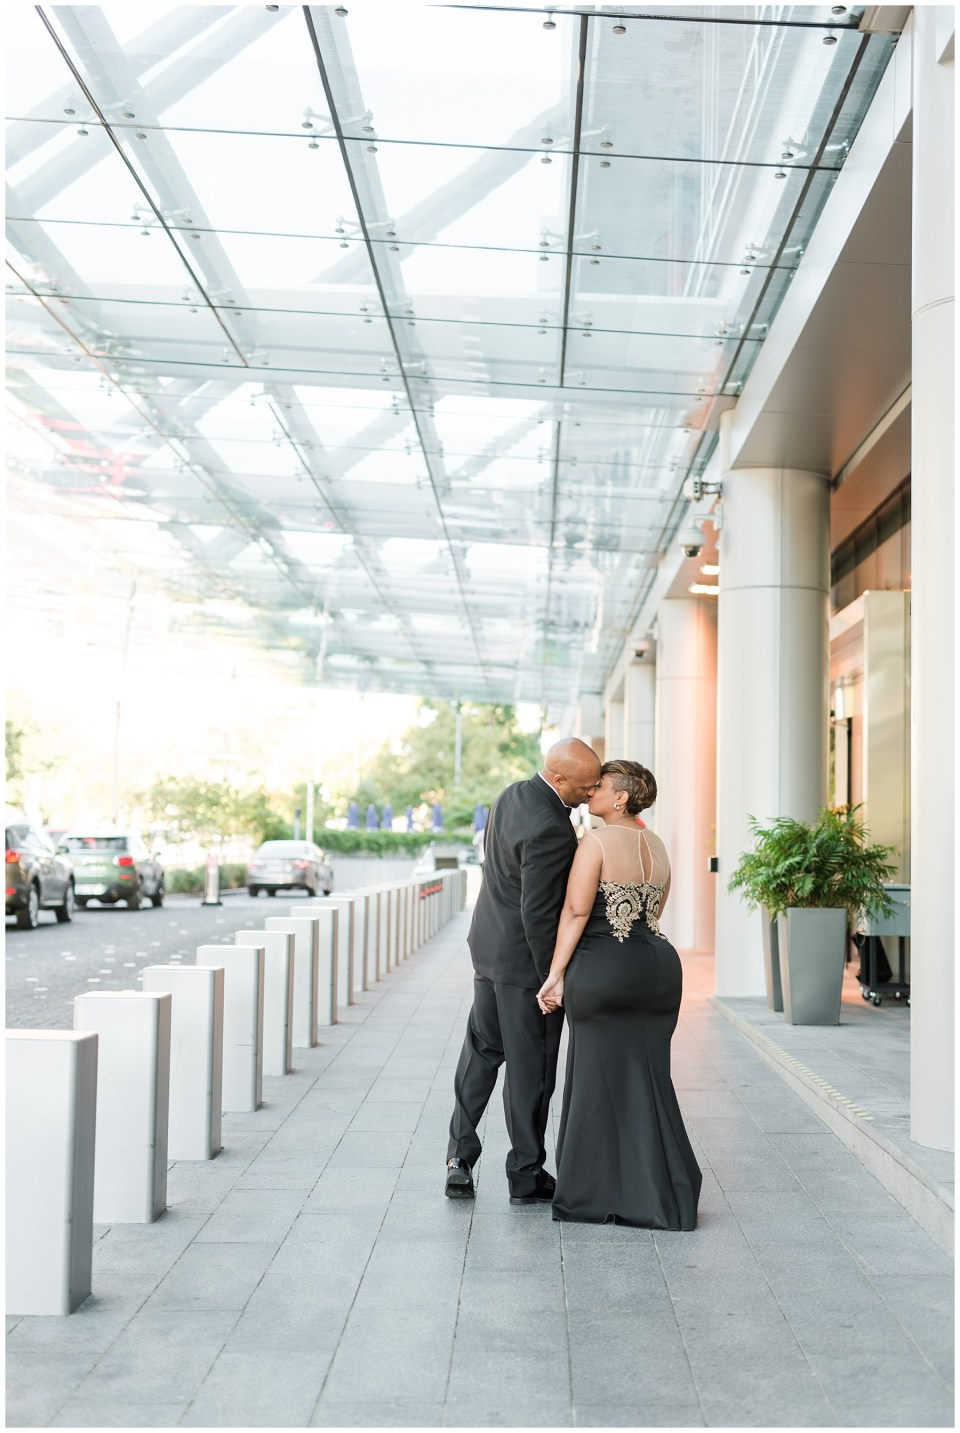 marriott-marquis-hotel-proposal-engagement-photos-dc-wedding-photographer-photo-32.jpg